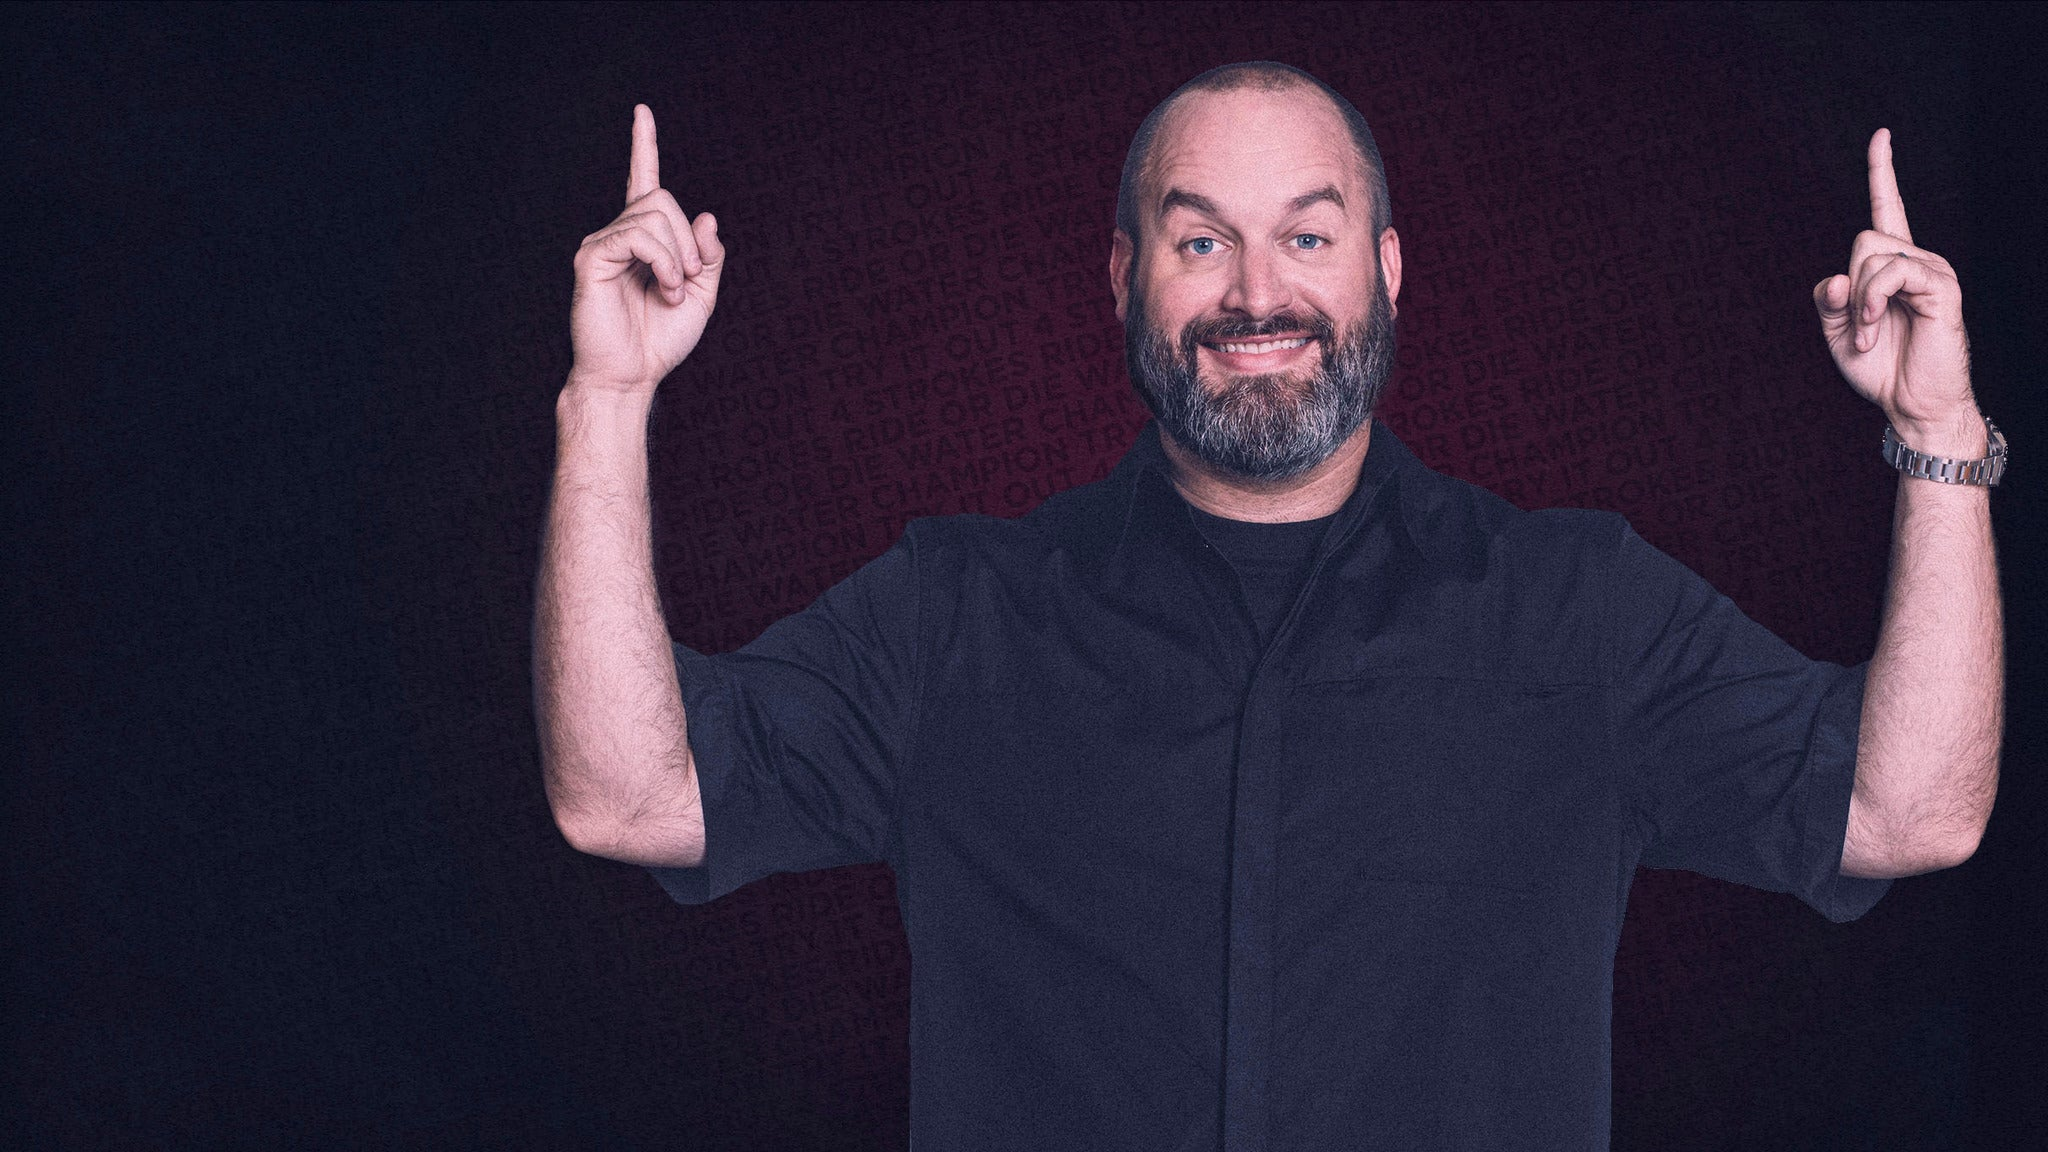 Tom Segura: Take It Down Tour at The Masonic